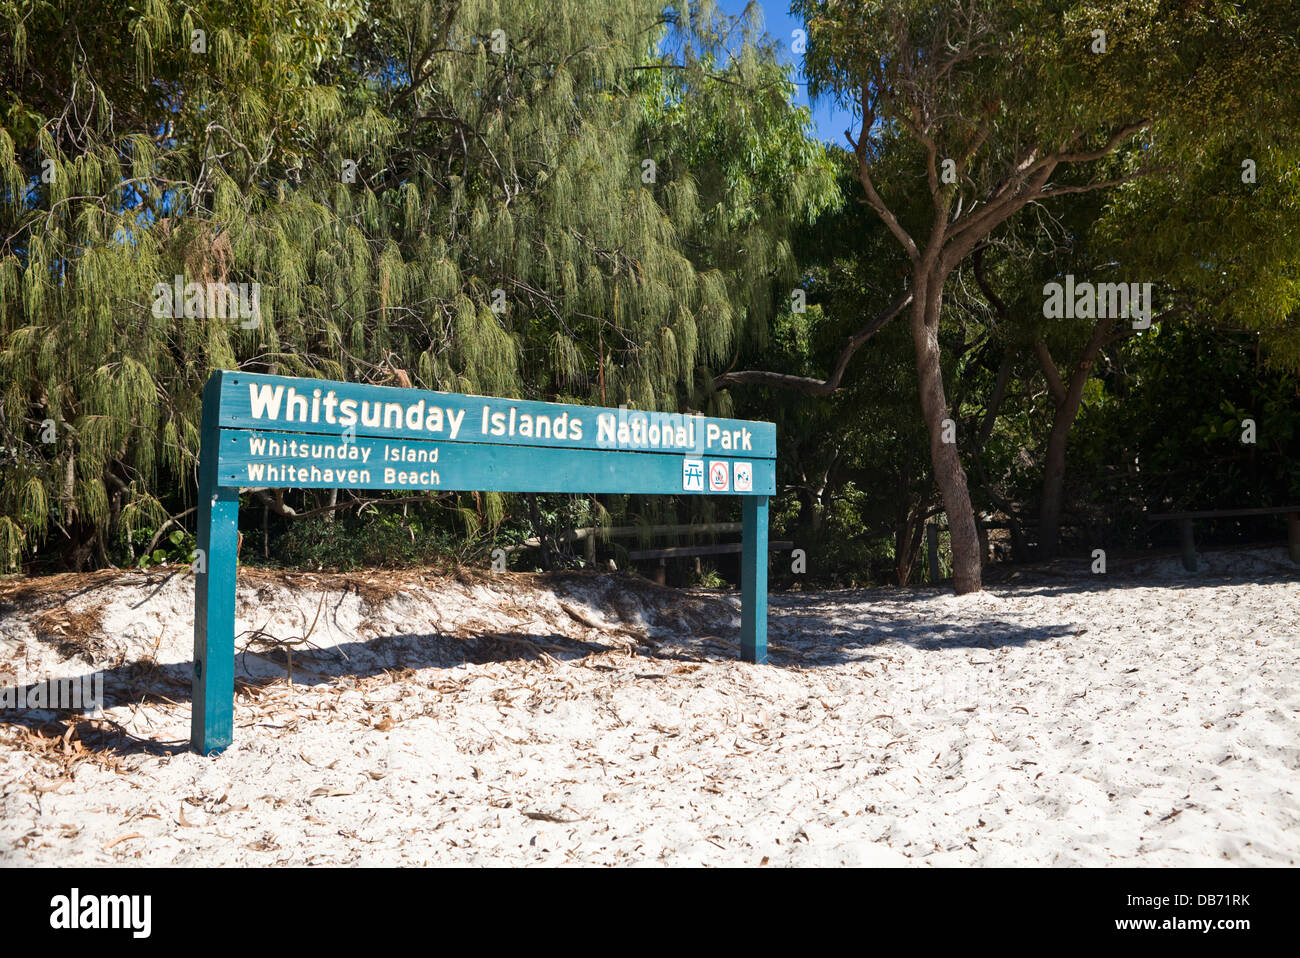 Sign on Whitehaven Beach in Whitsunday Islands National Park. Whitsundays, Queensland, Australia - Stock Image